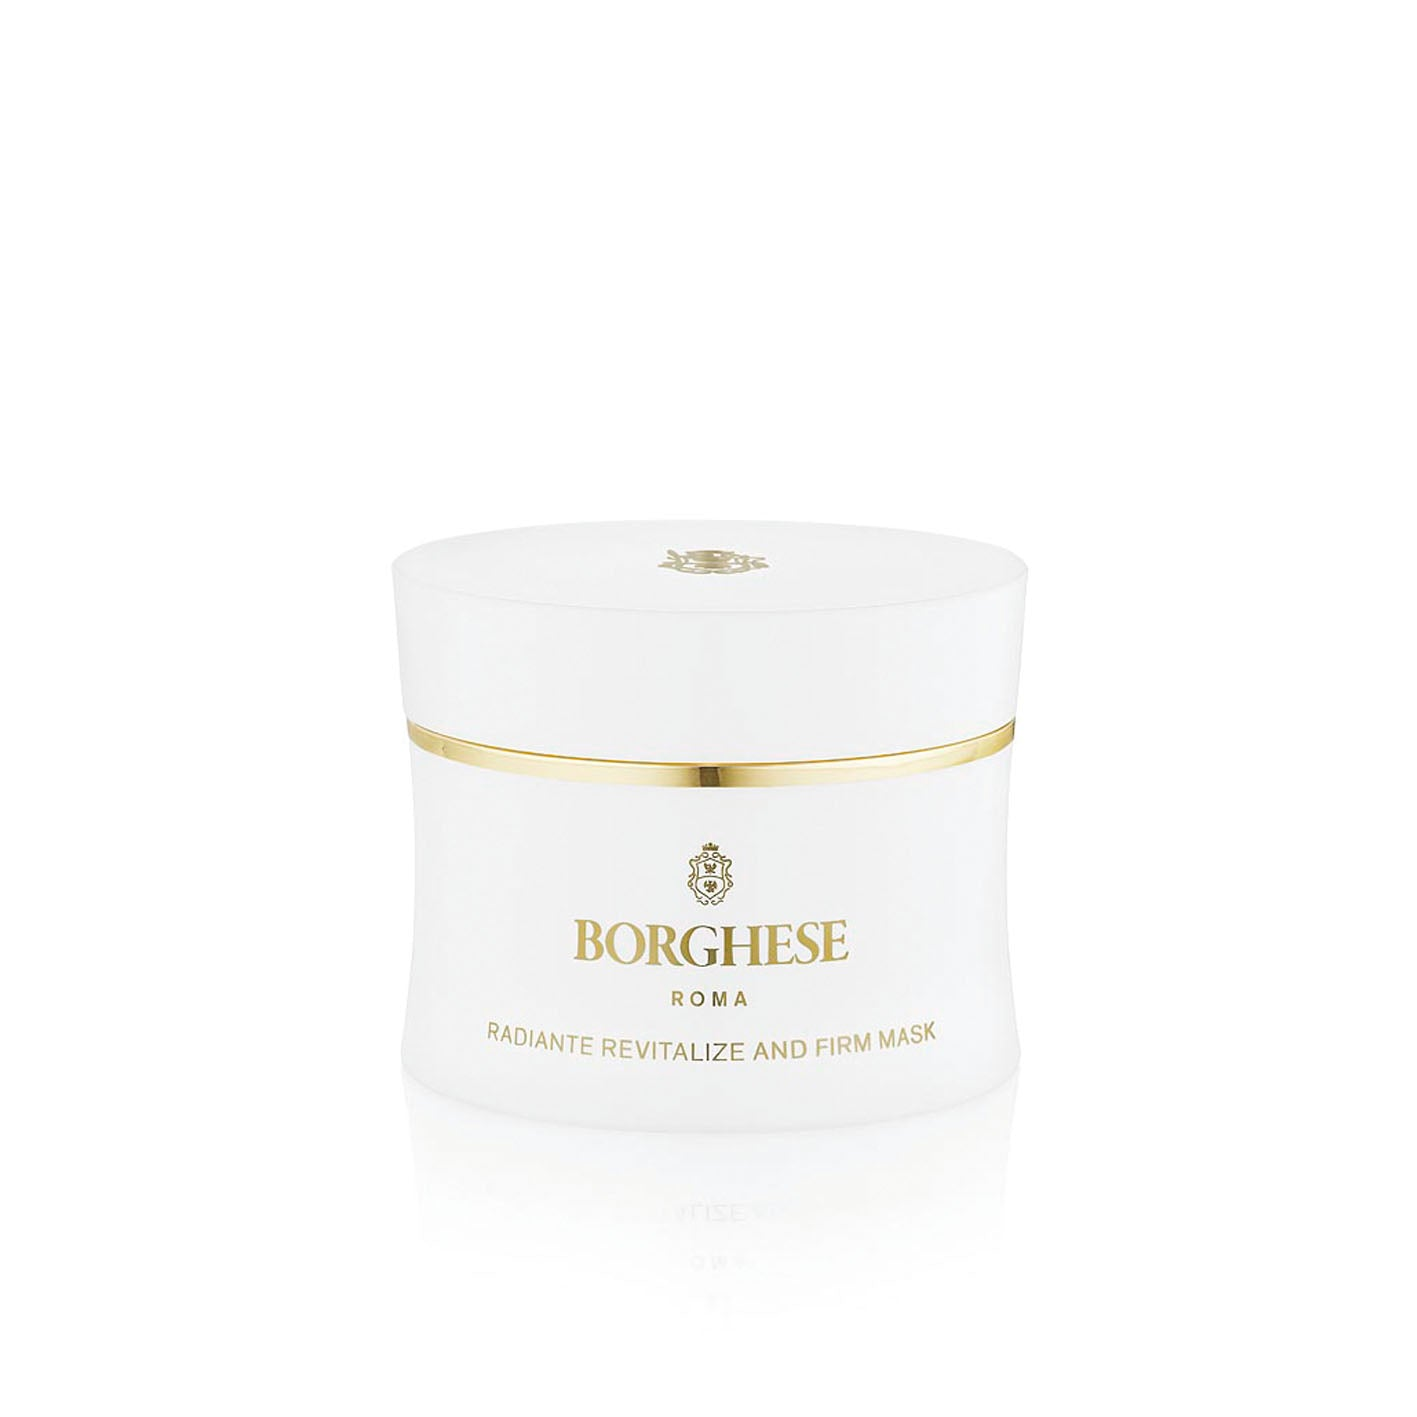 Radiante Revitalize and Firm Mask